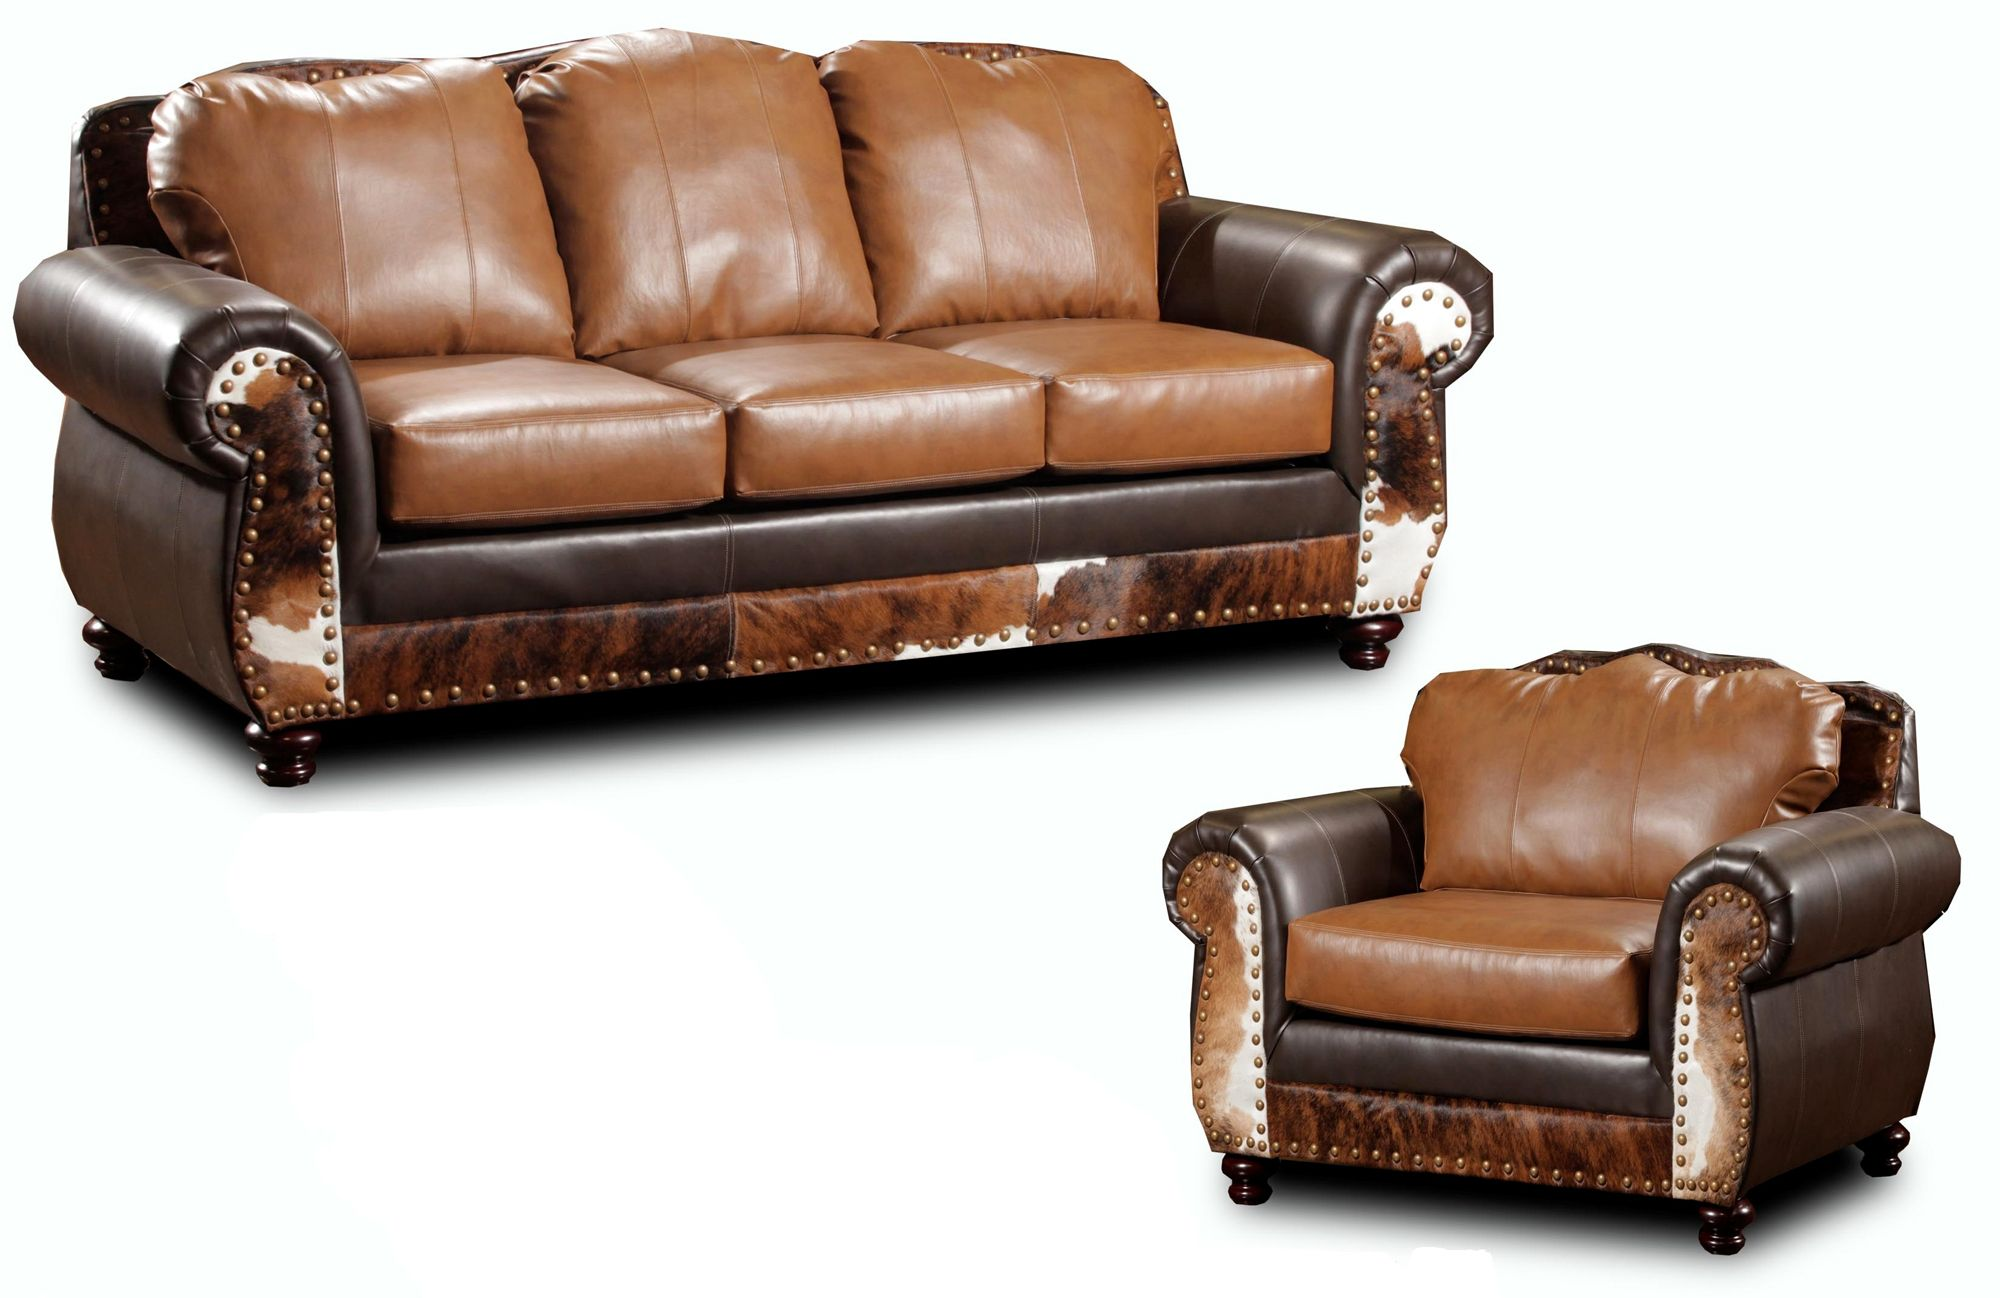 Rustic Leather Chairs Rustic Leather Furniture Denver Rustic Lodge Leather Sofa And